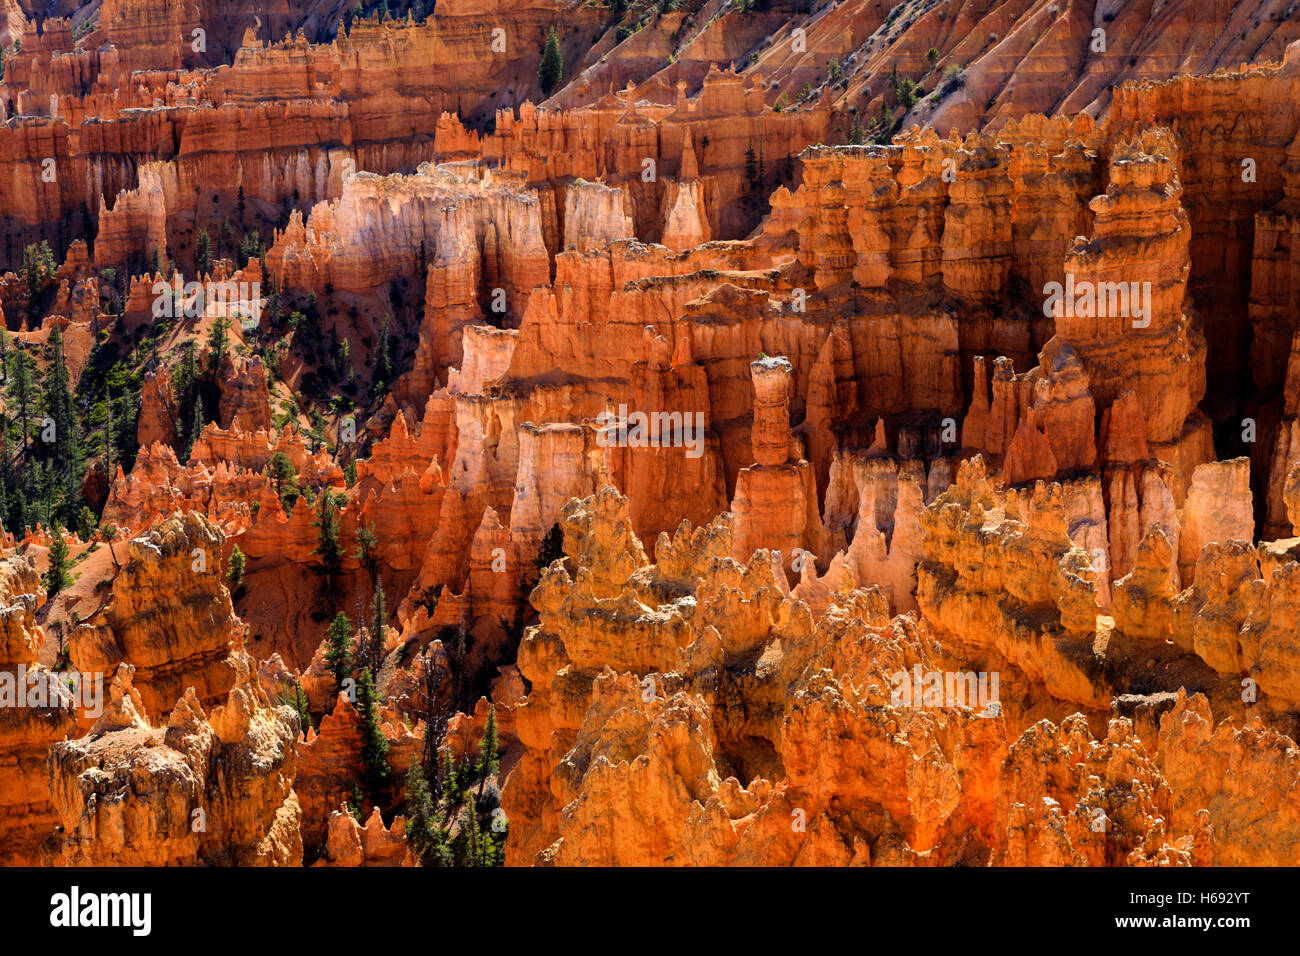 The sunlight makes the red rock formations glow as seen from the Sunset Point Overlook in Bryce Canyon National - Stock Image